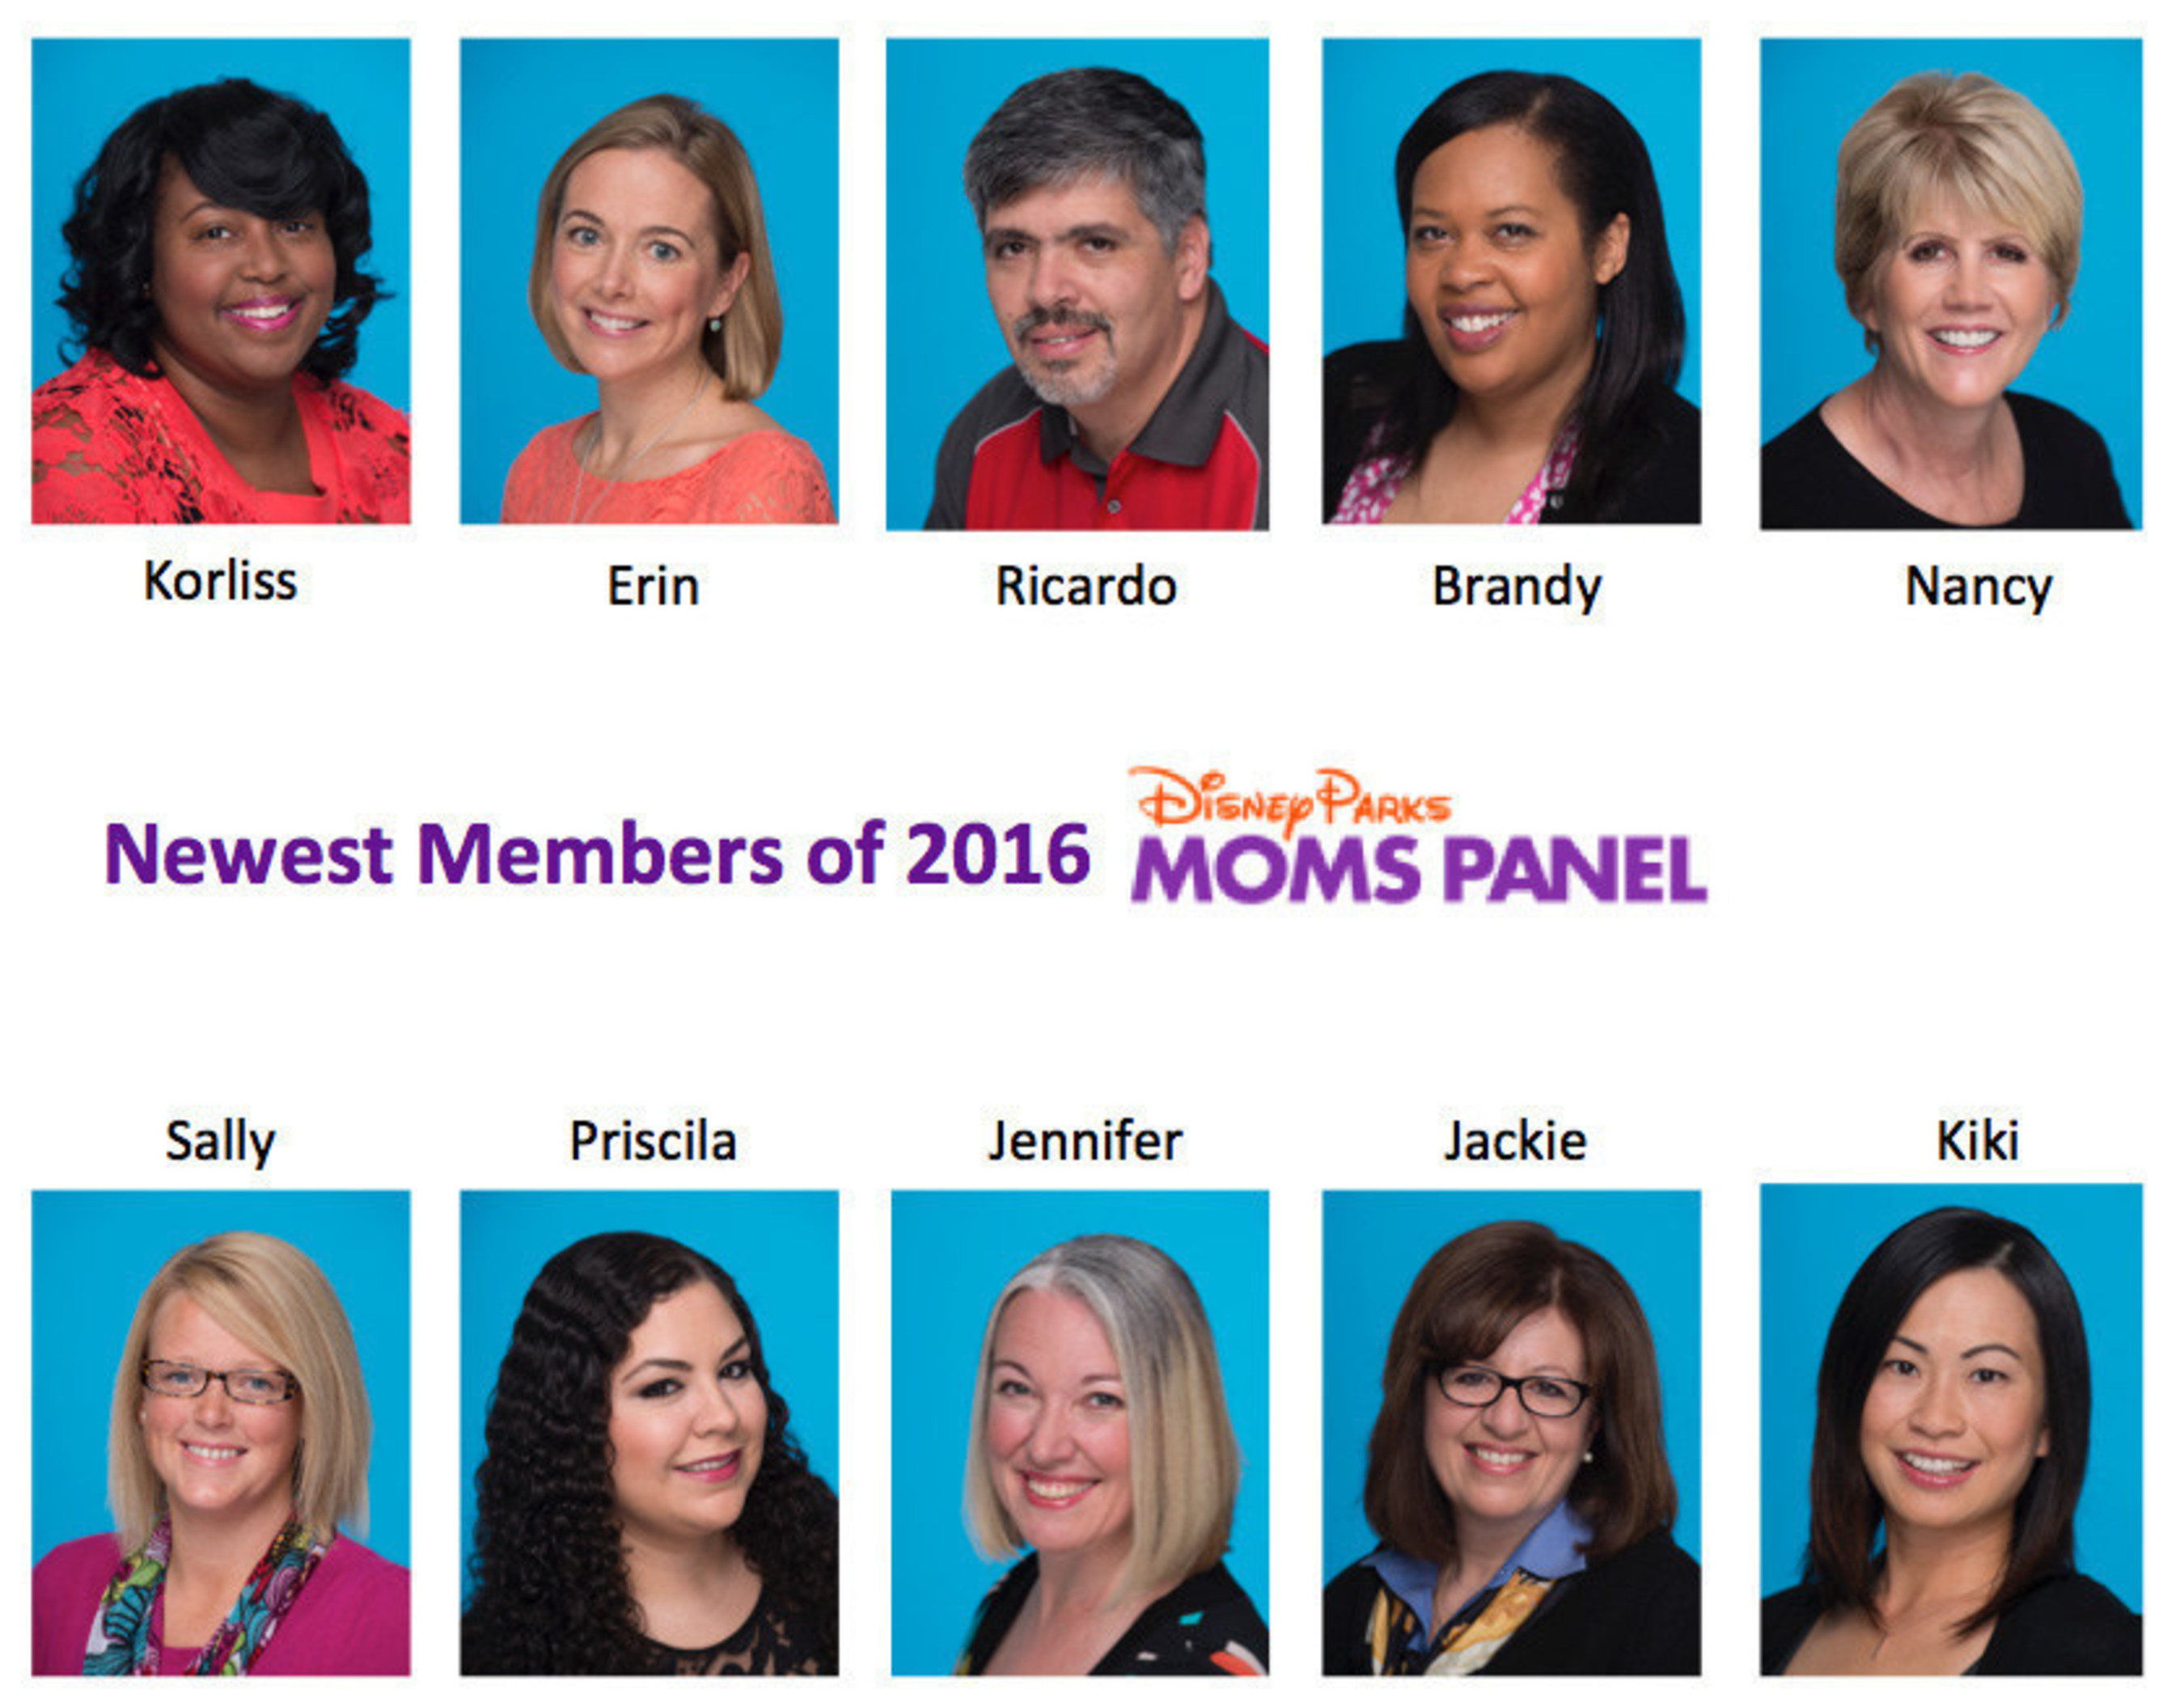 Newest Members of the 2016 Disney Parks Moms Panel